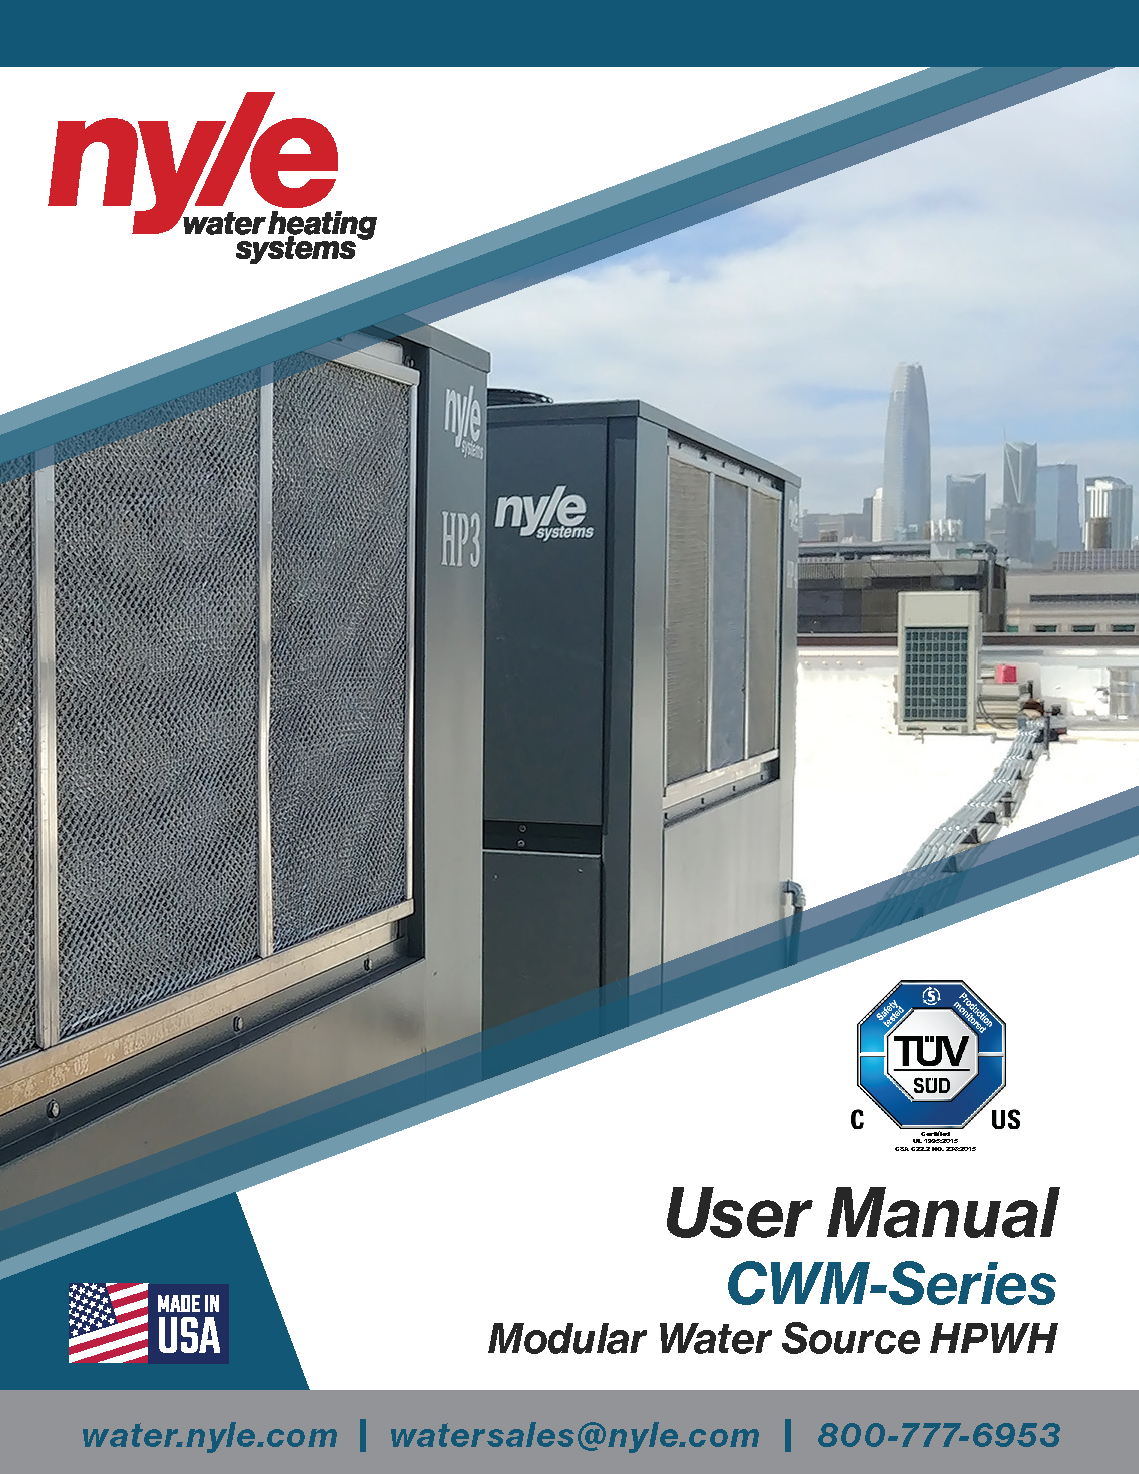 CWM - Series Modular Water Source Manual